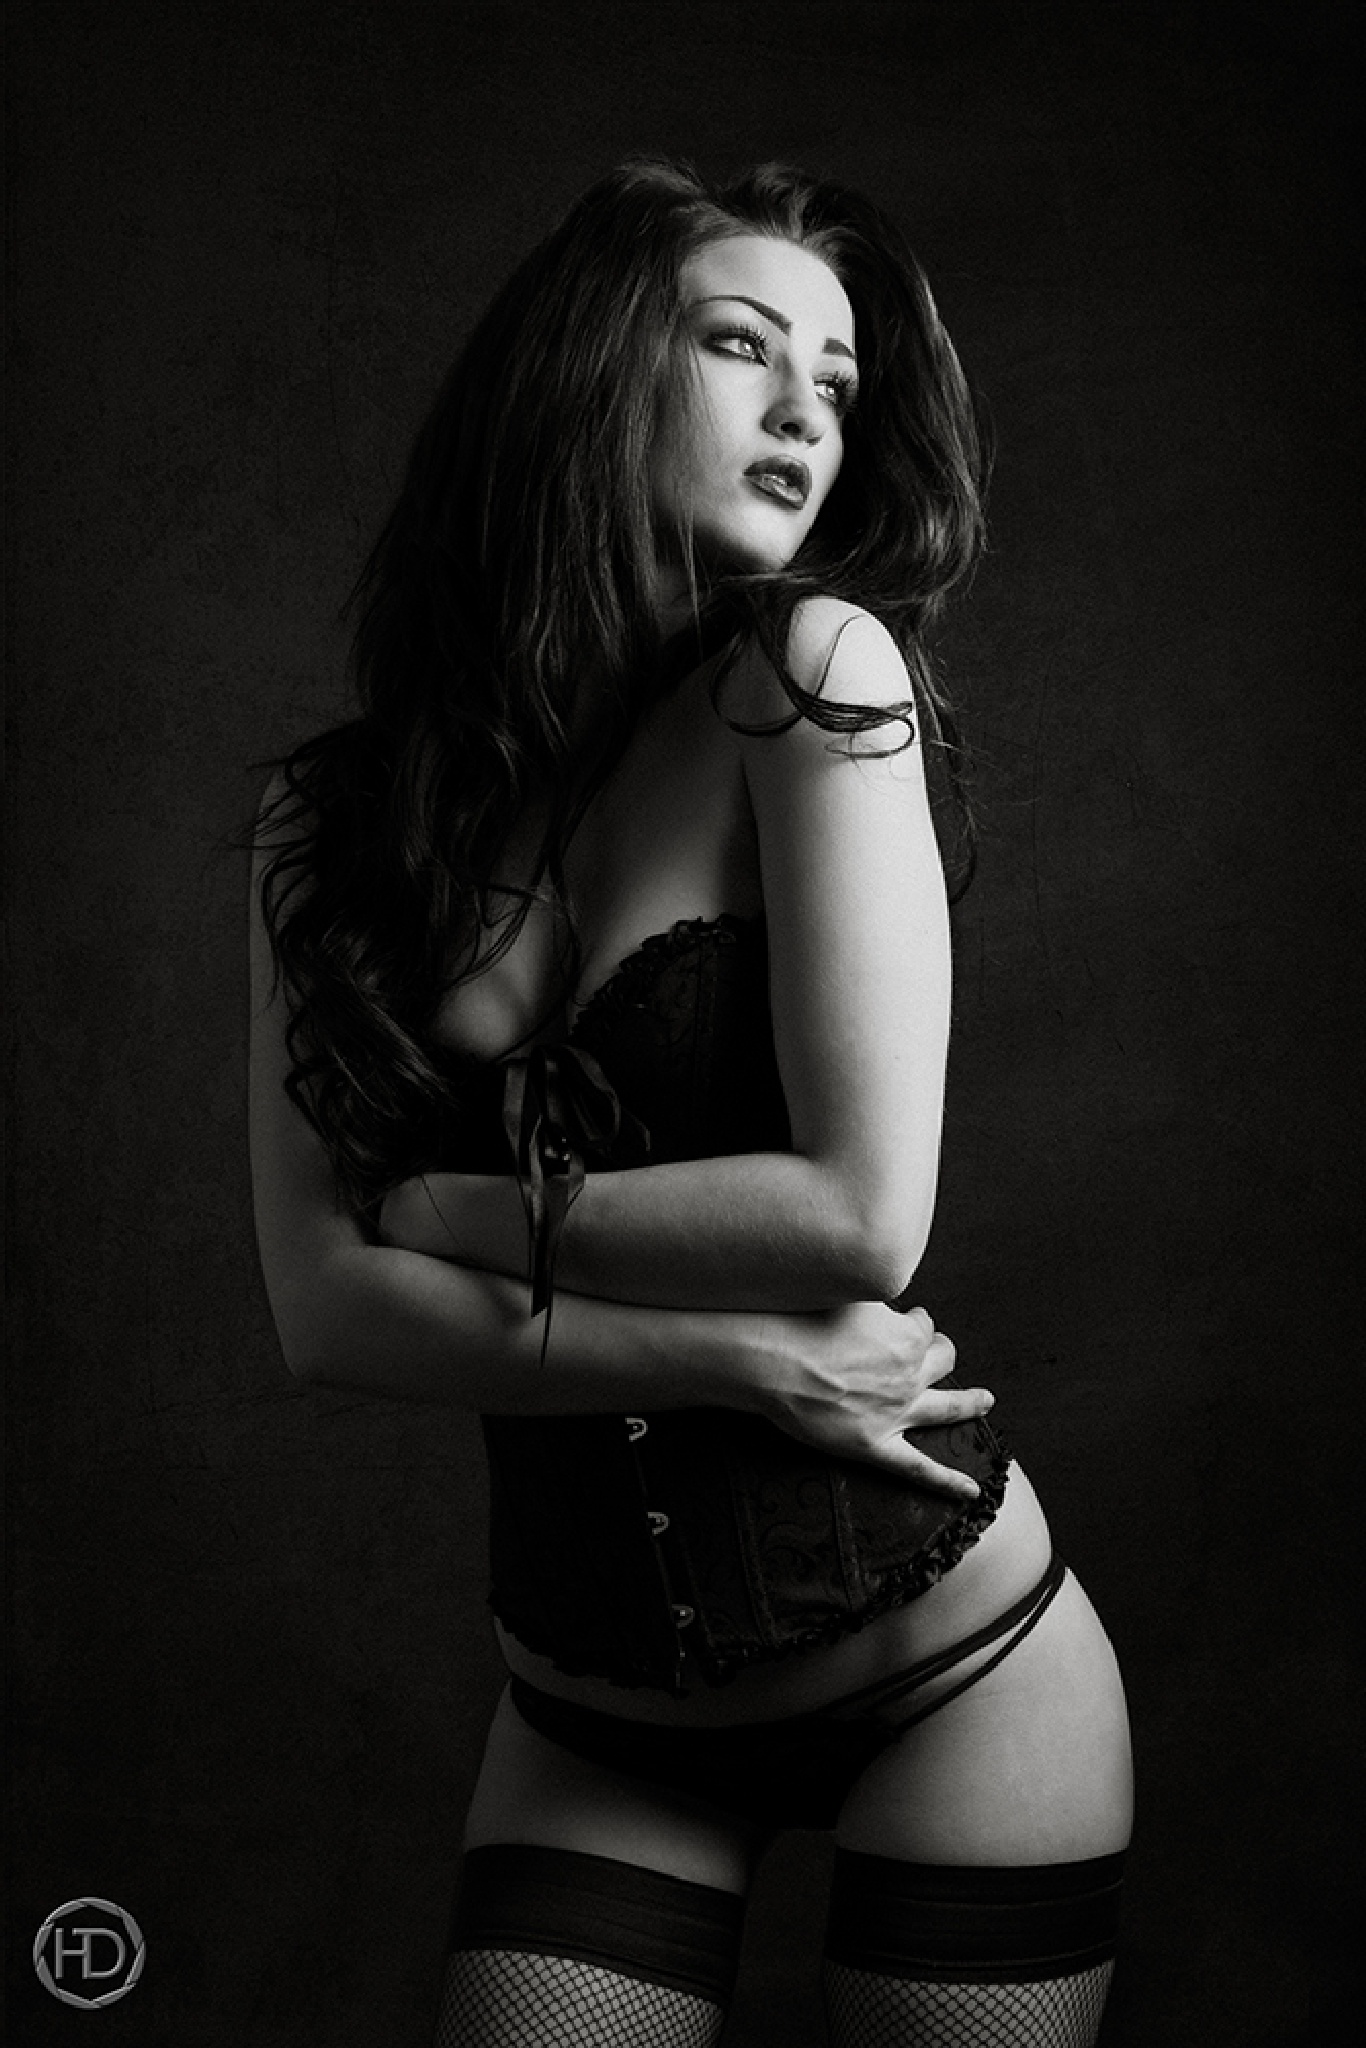 BLACK CORSET by HDphotographie